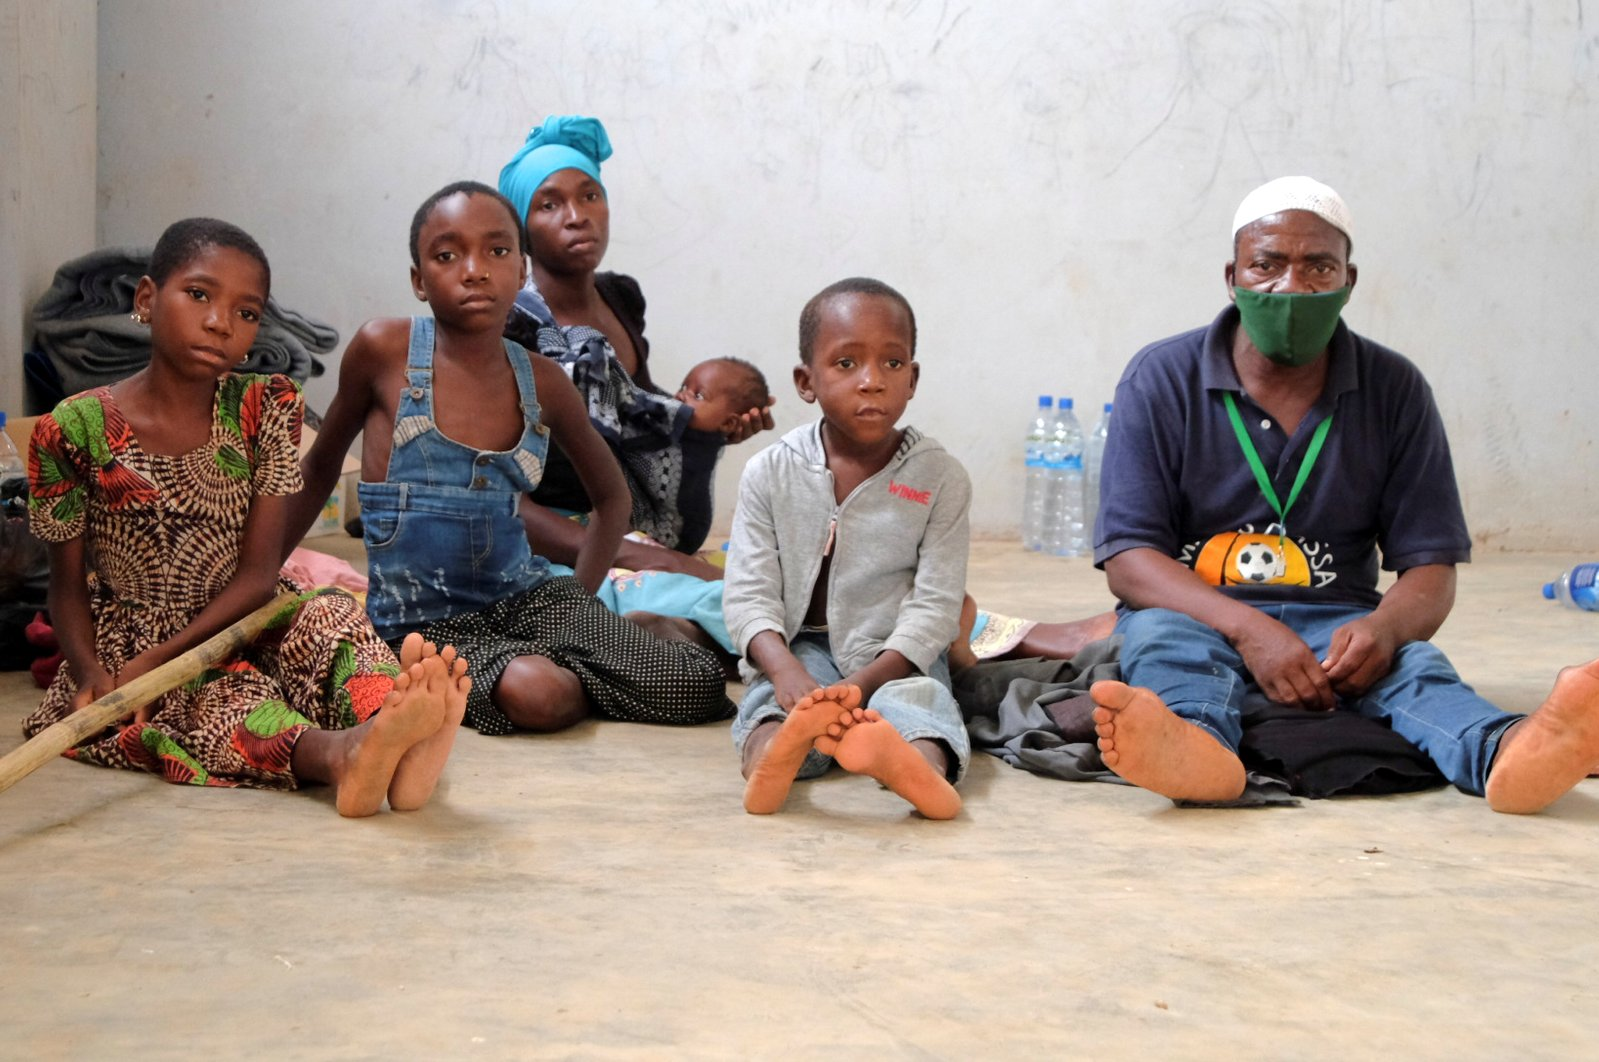 Adelino Alberto and his family, who fled an attack claimed by Daesh-linked insurgents on the town of Palma, are seen at a temporary displacement center in Pemba, Mozambique, April 3, 2021. (REUTERS Photo)